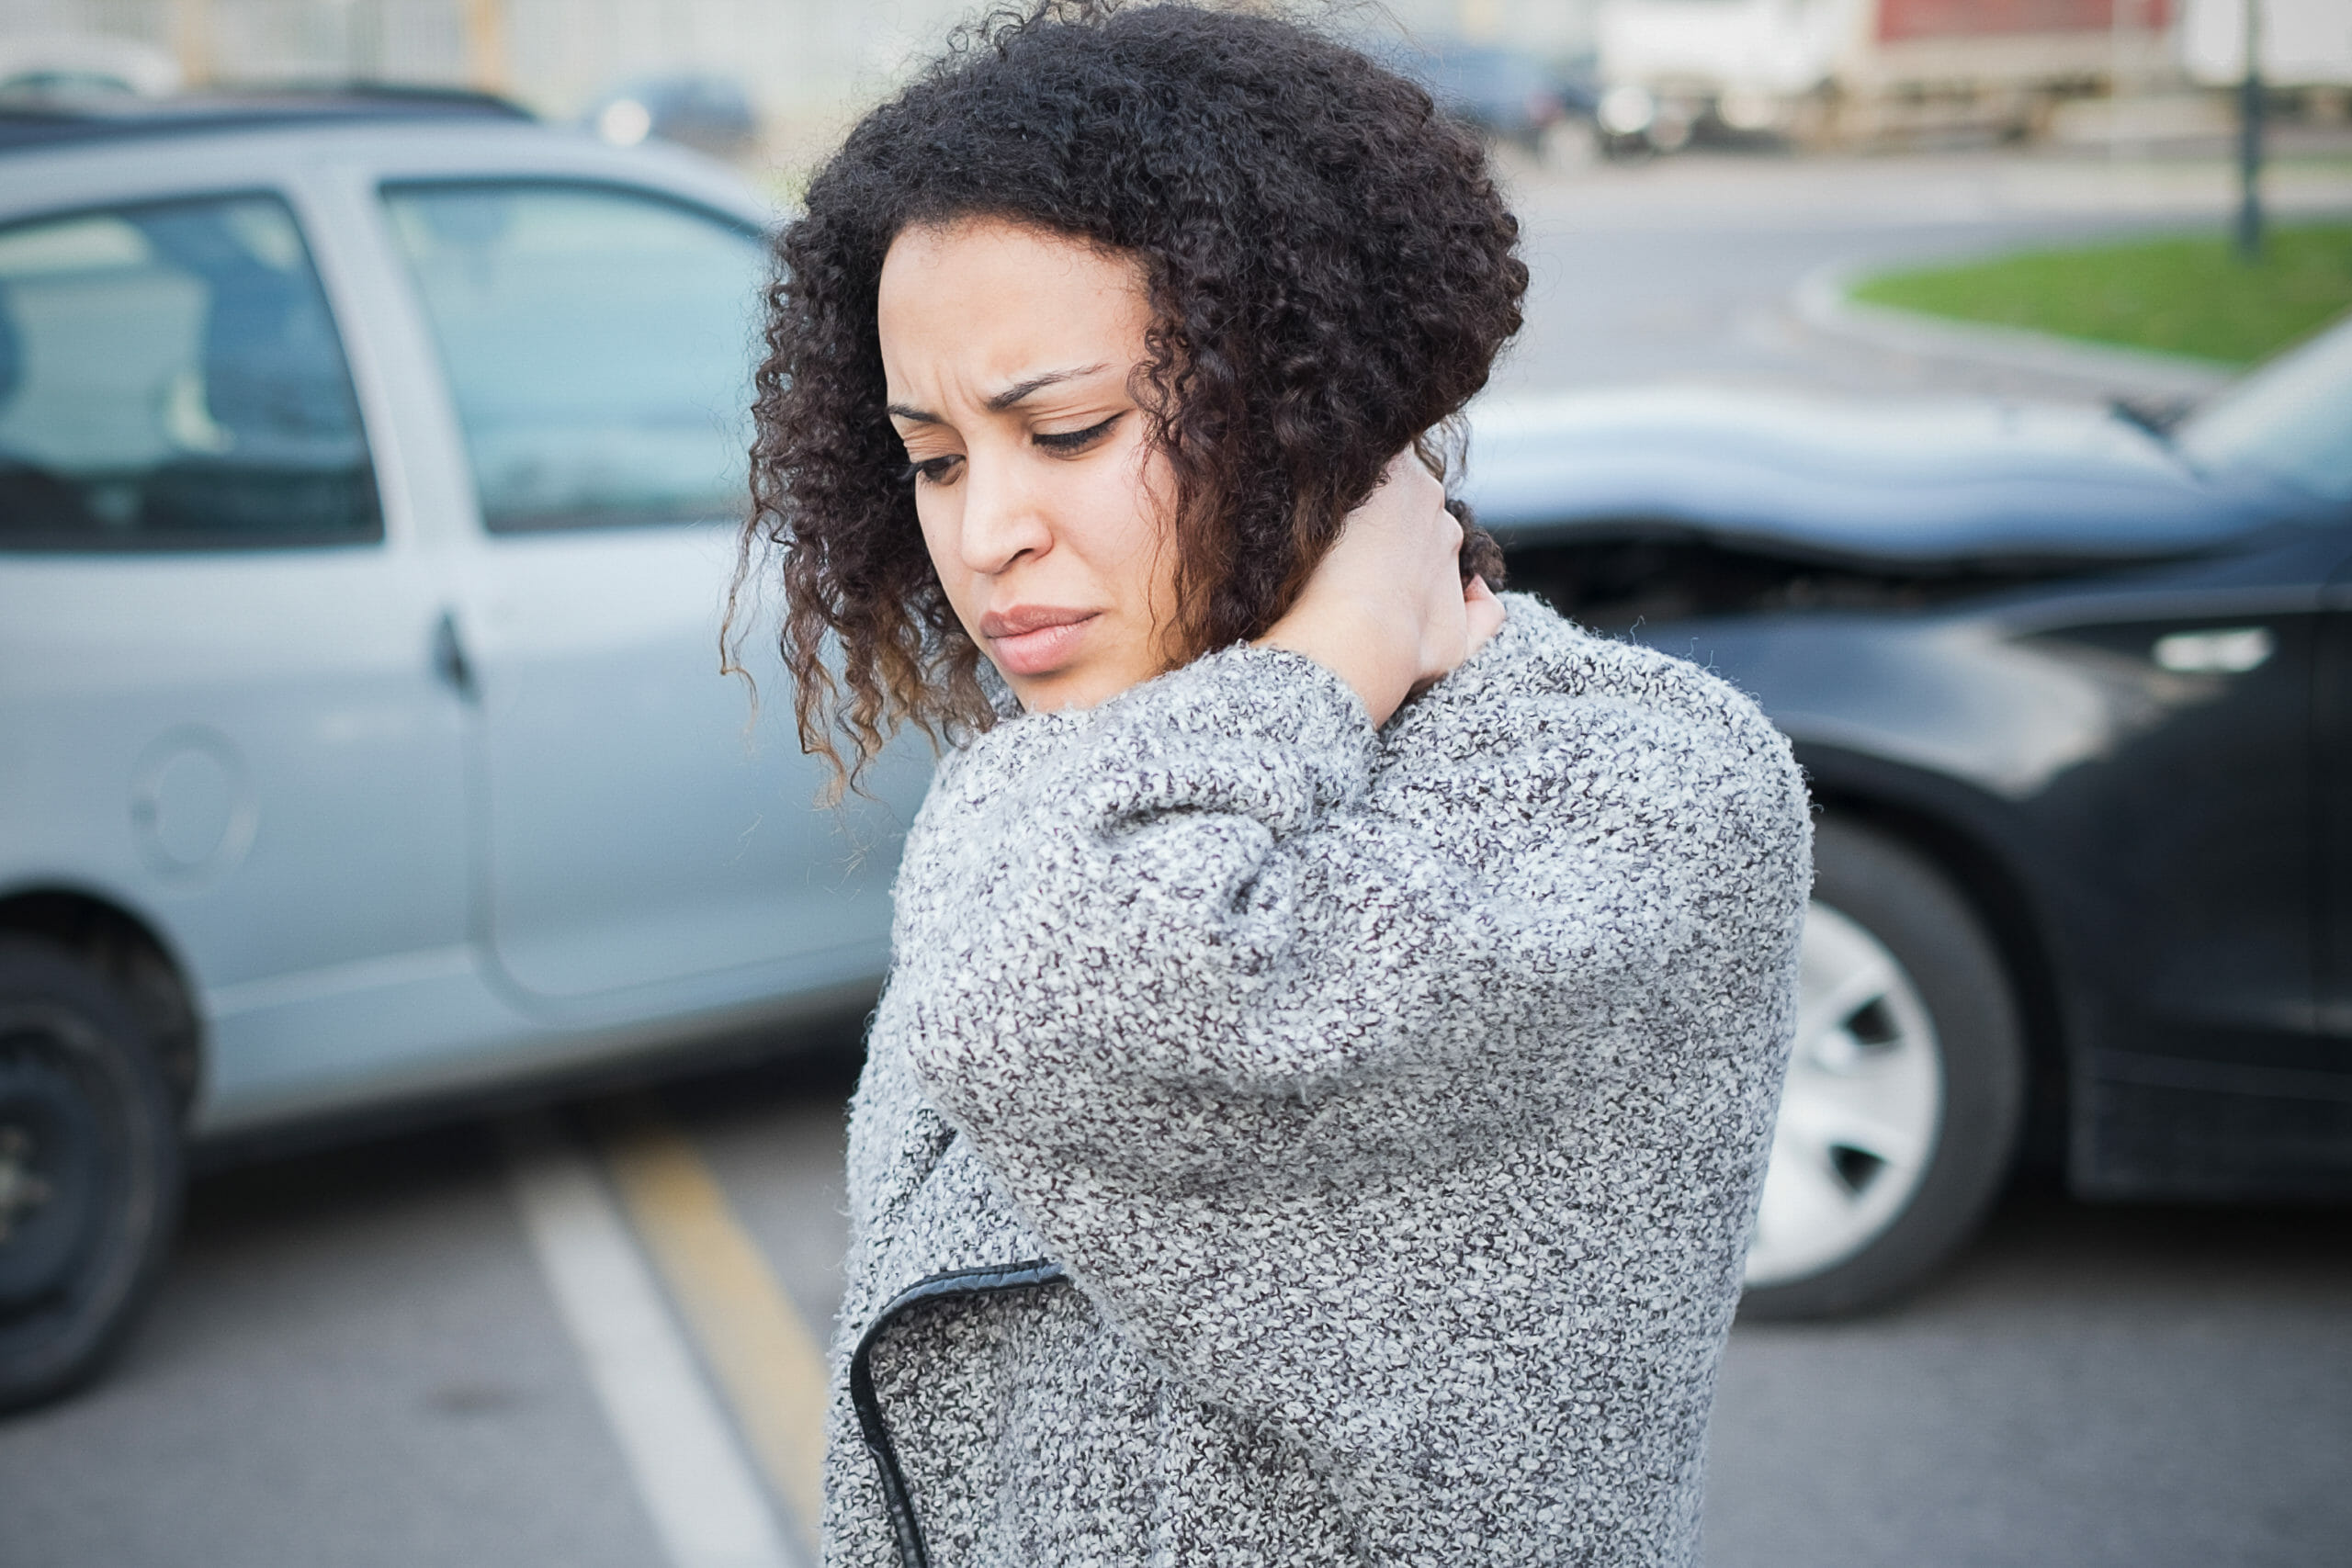 Recovering From Car Accident Injuries